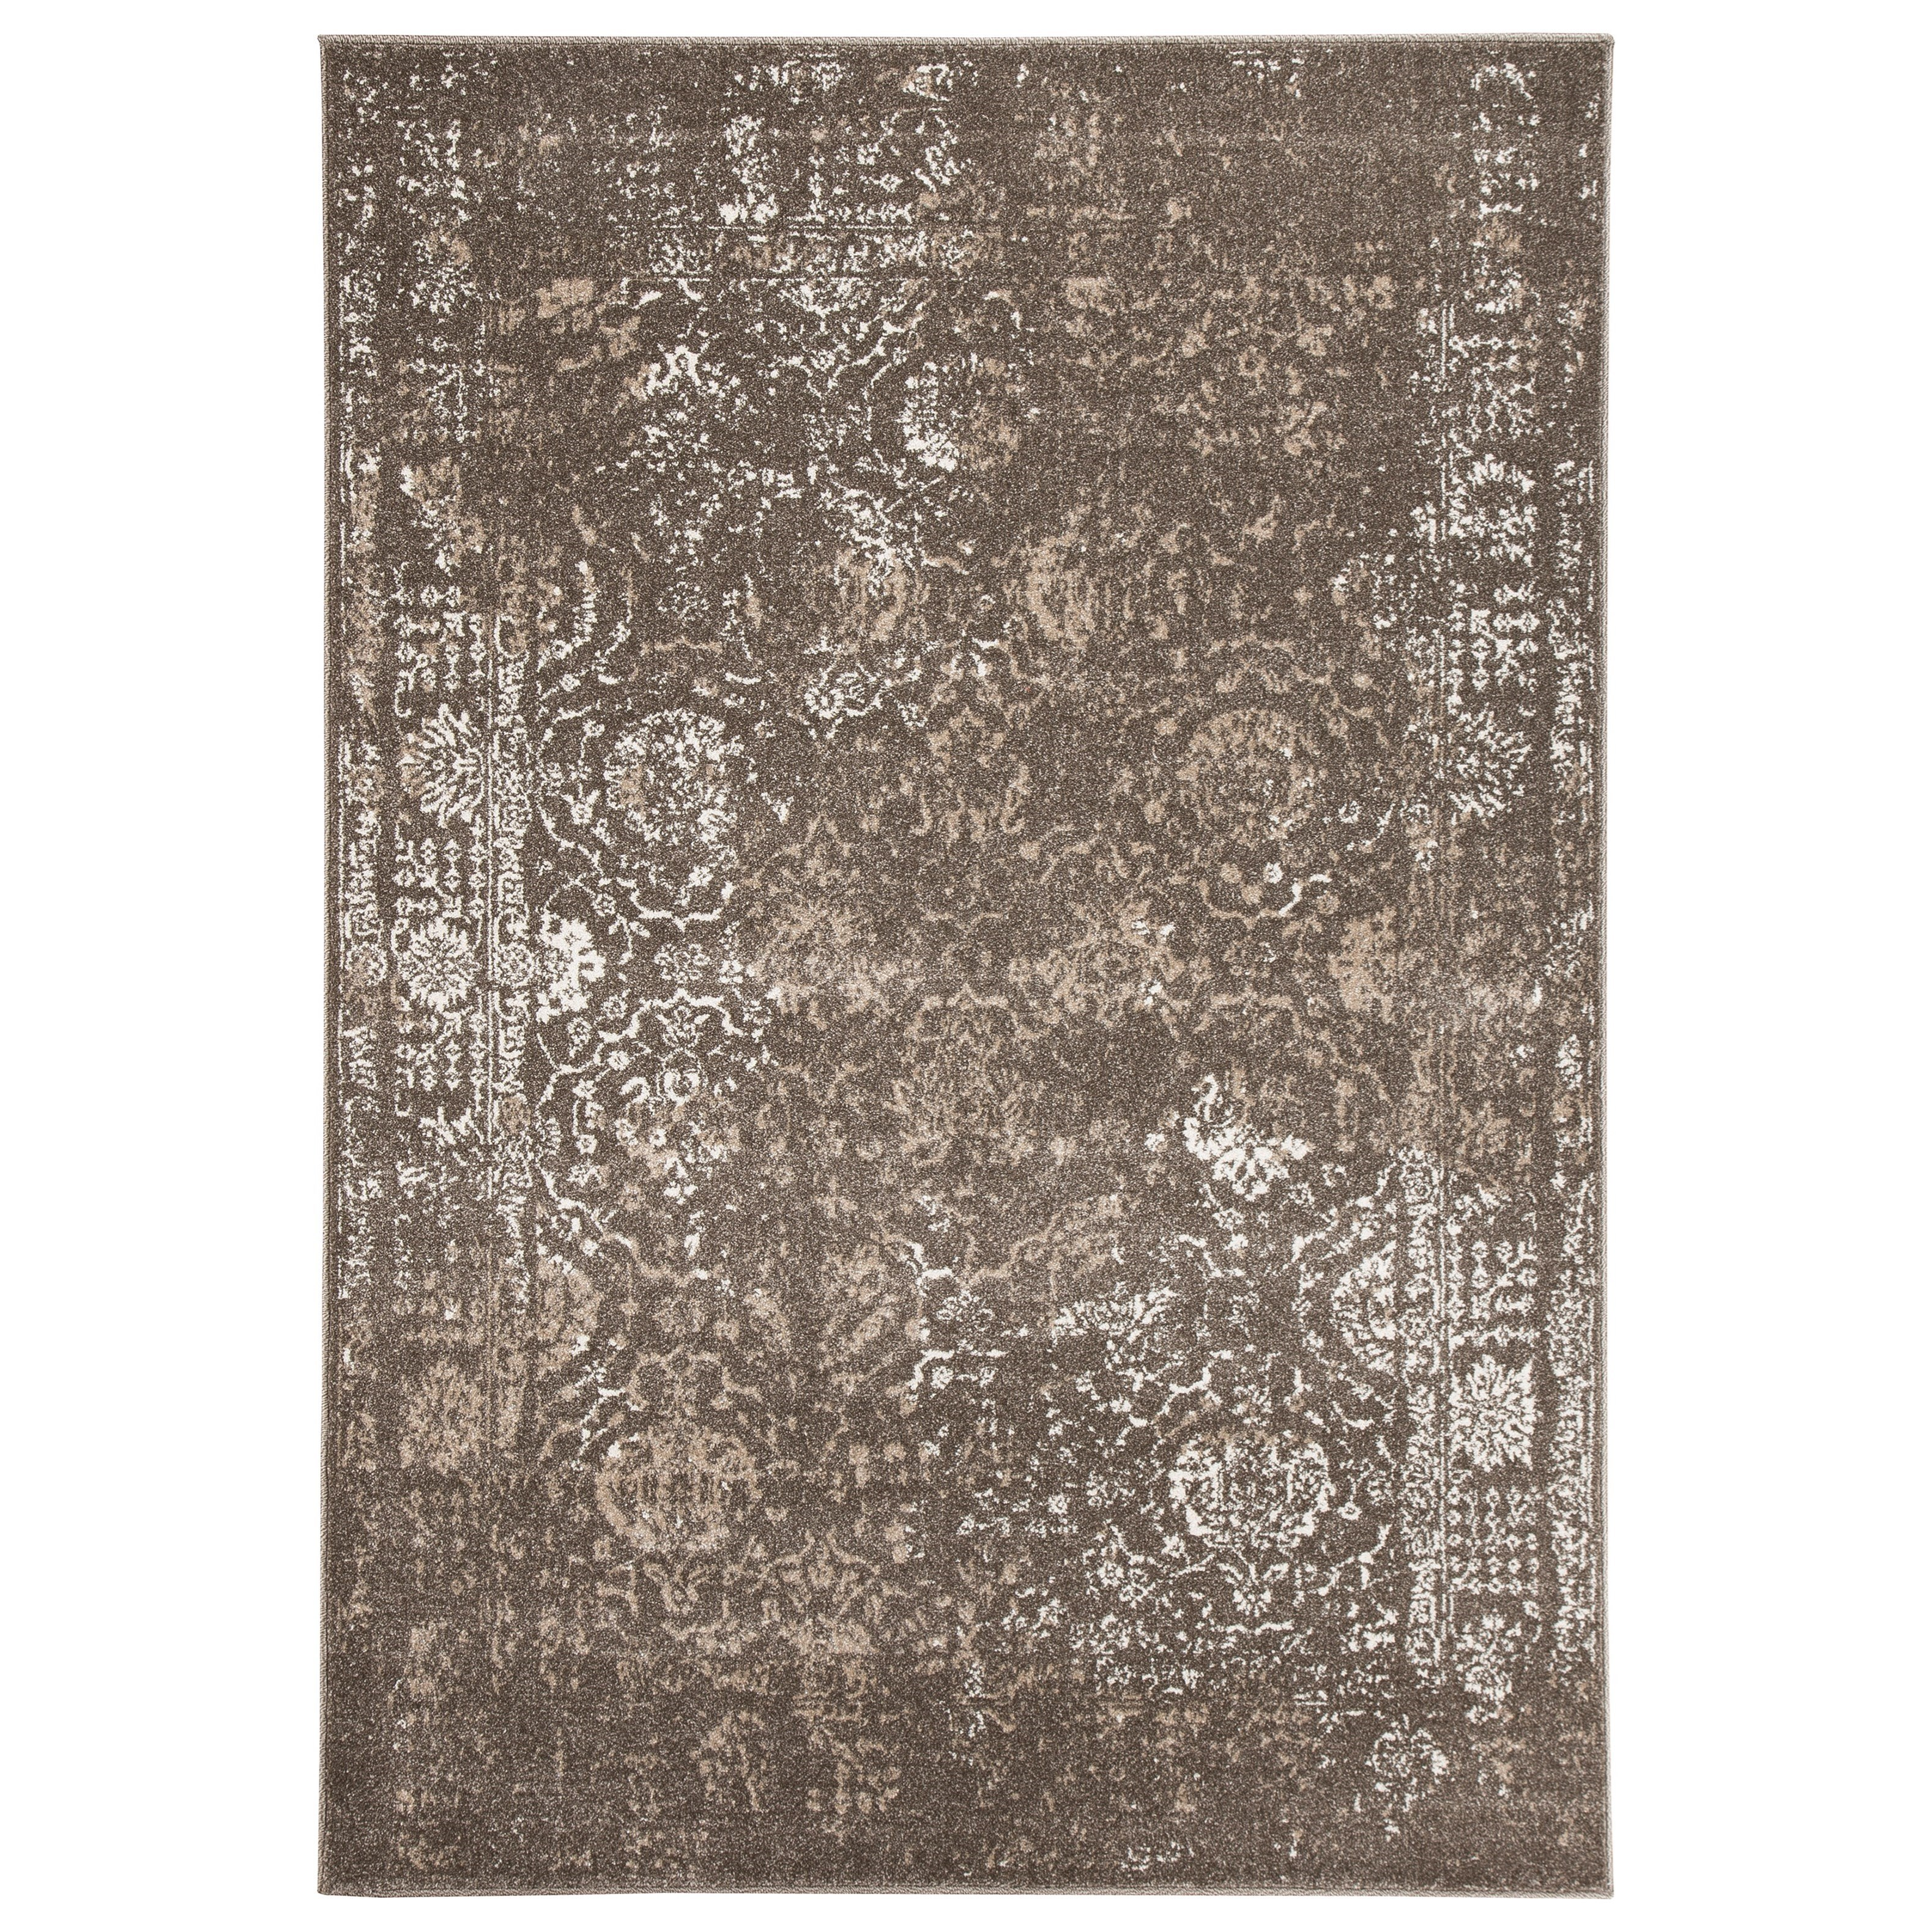 Signature Design by Ashley Transitional Area Rugs Patras Brown Large Rug - Item Number: R401401